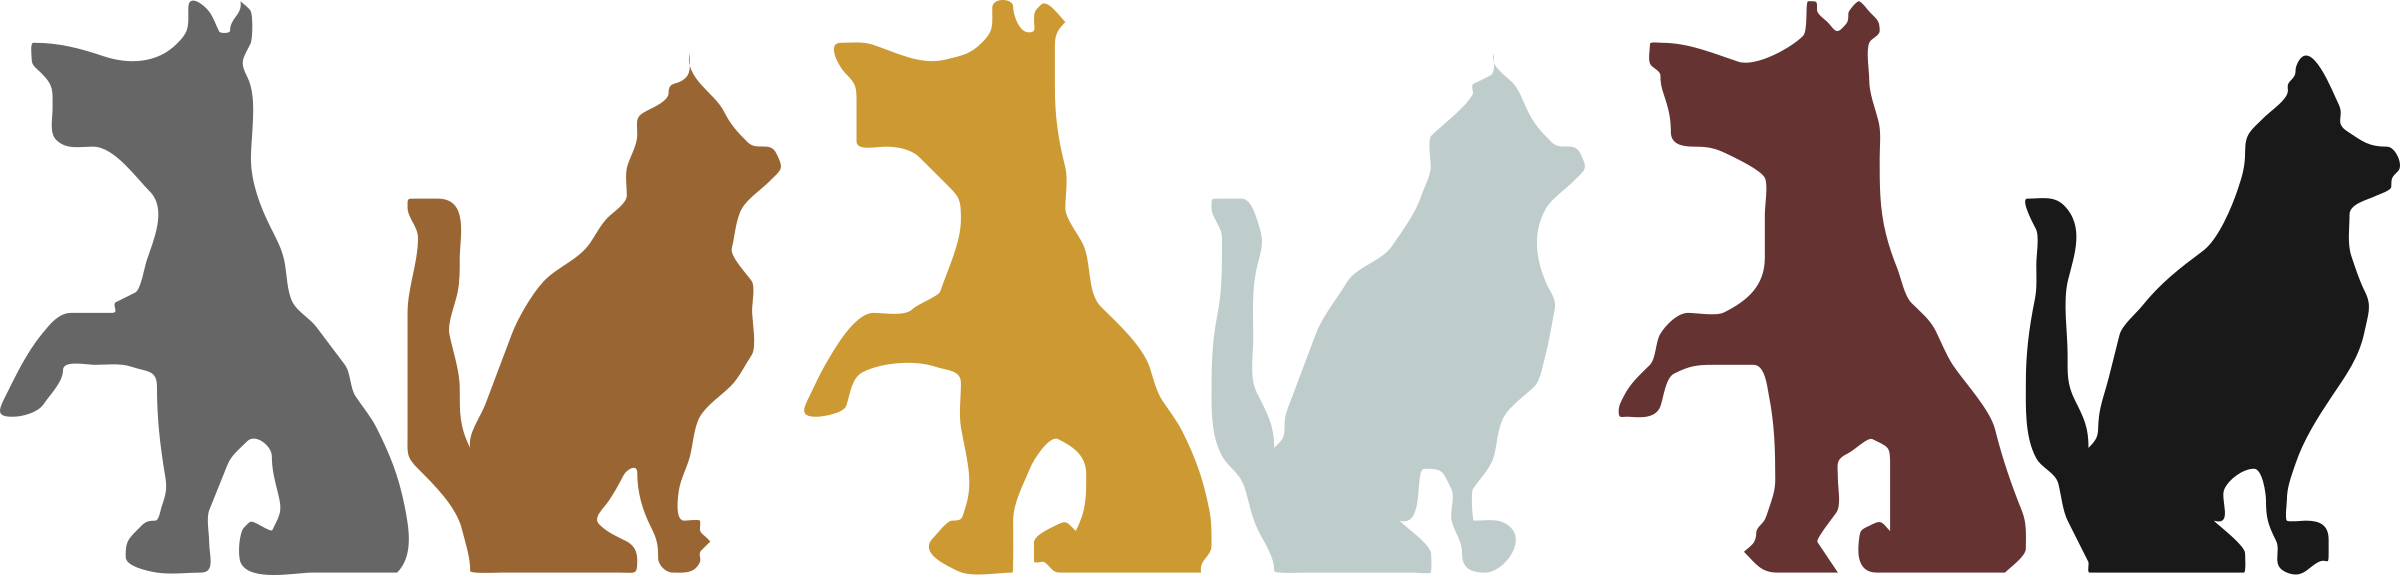 cat and dog clipart free at getdrawings com free for personal use rh getdrawings com